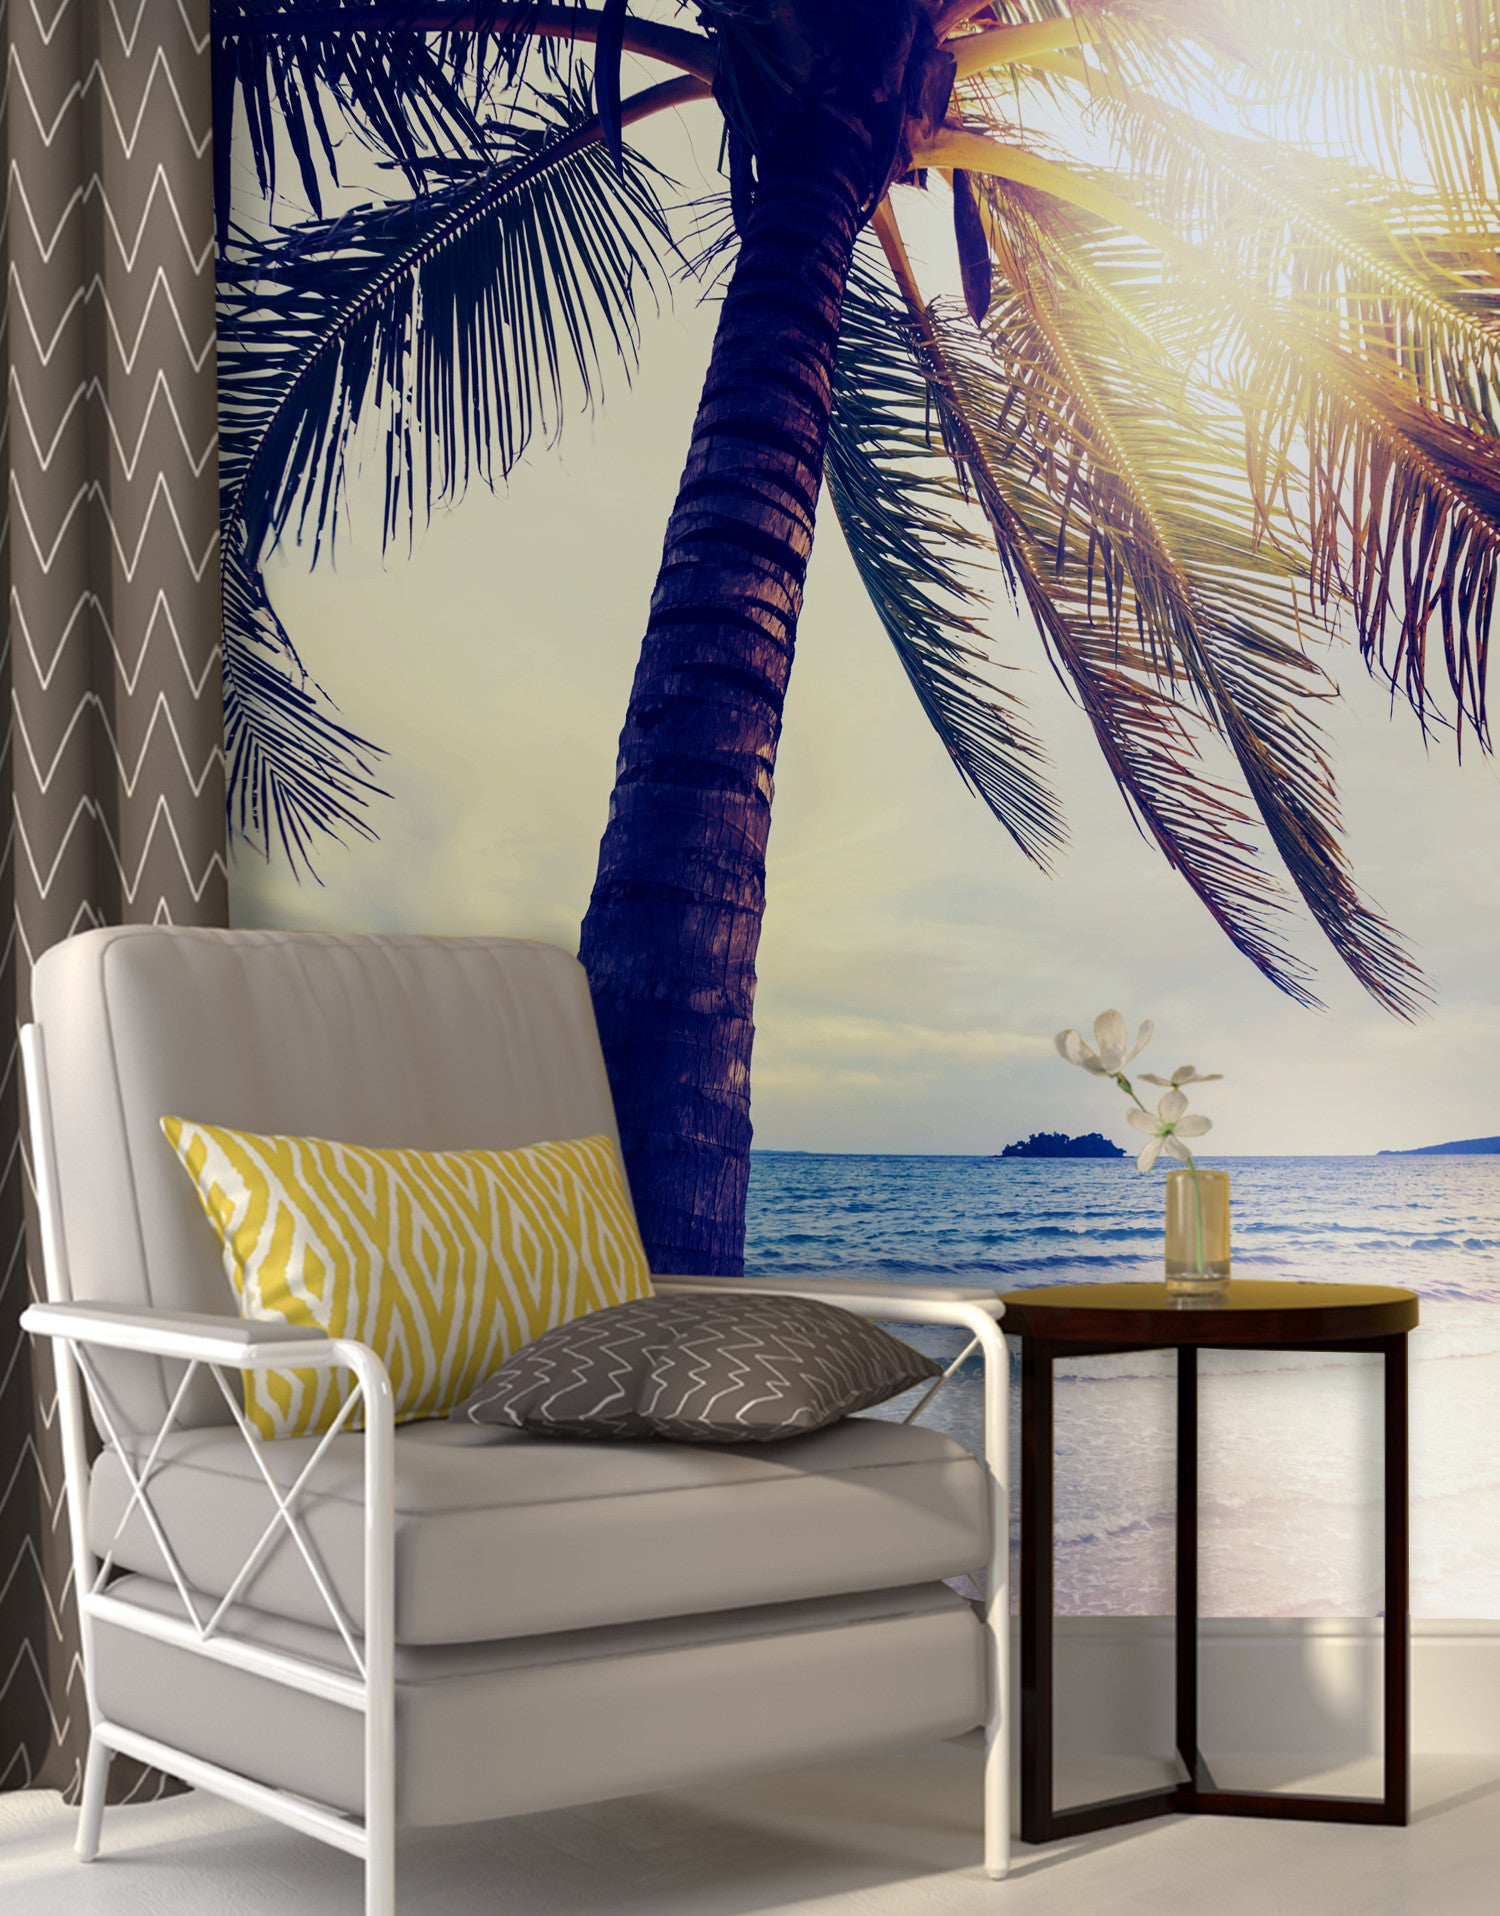 Beach Palm Tree Coastline Sunset Wall Mural #6040